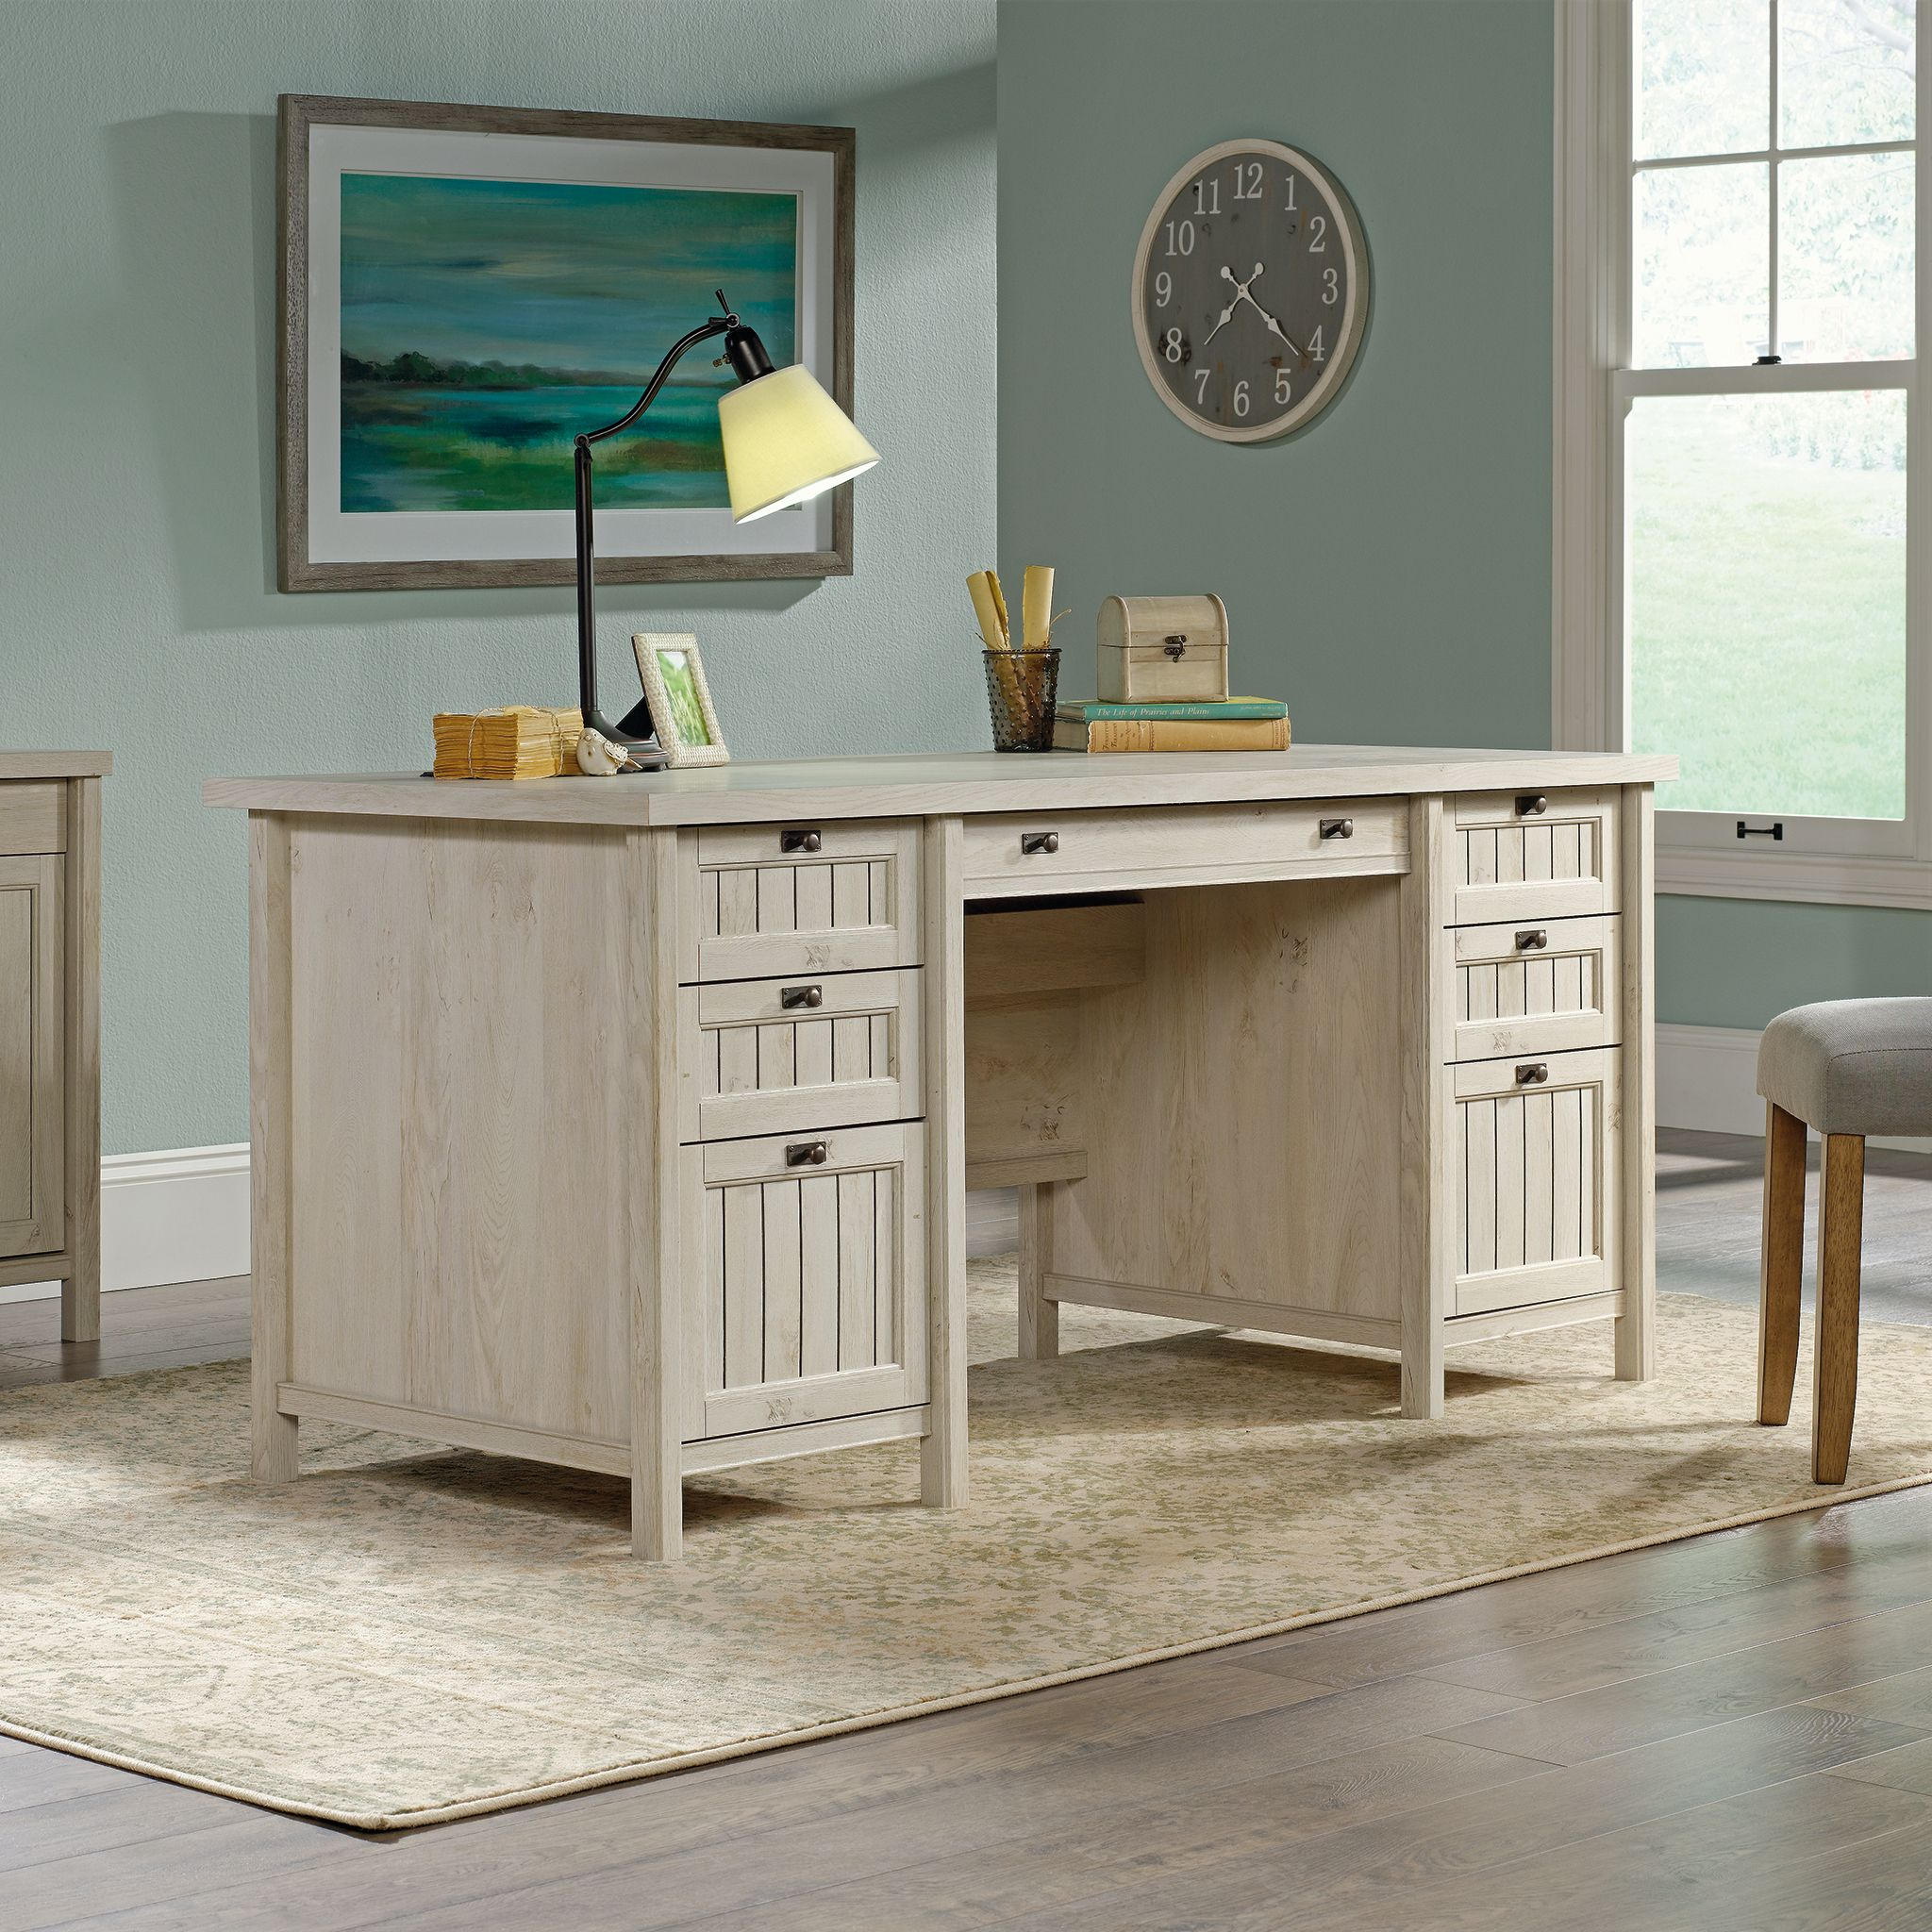 Sauder Costa Executive Desk, Chalked Chestnut Finish